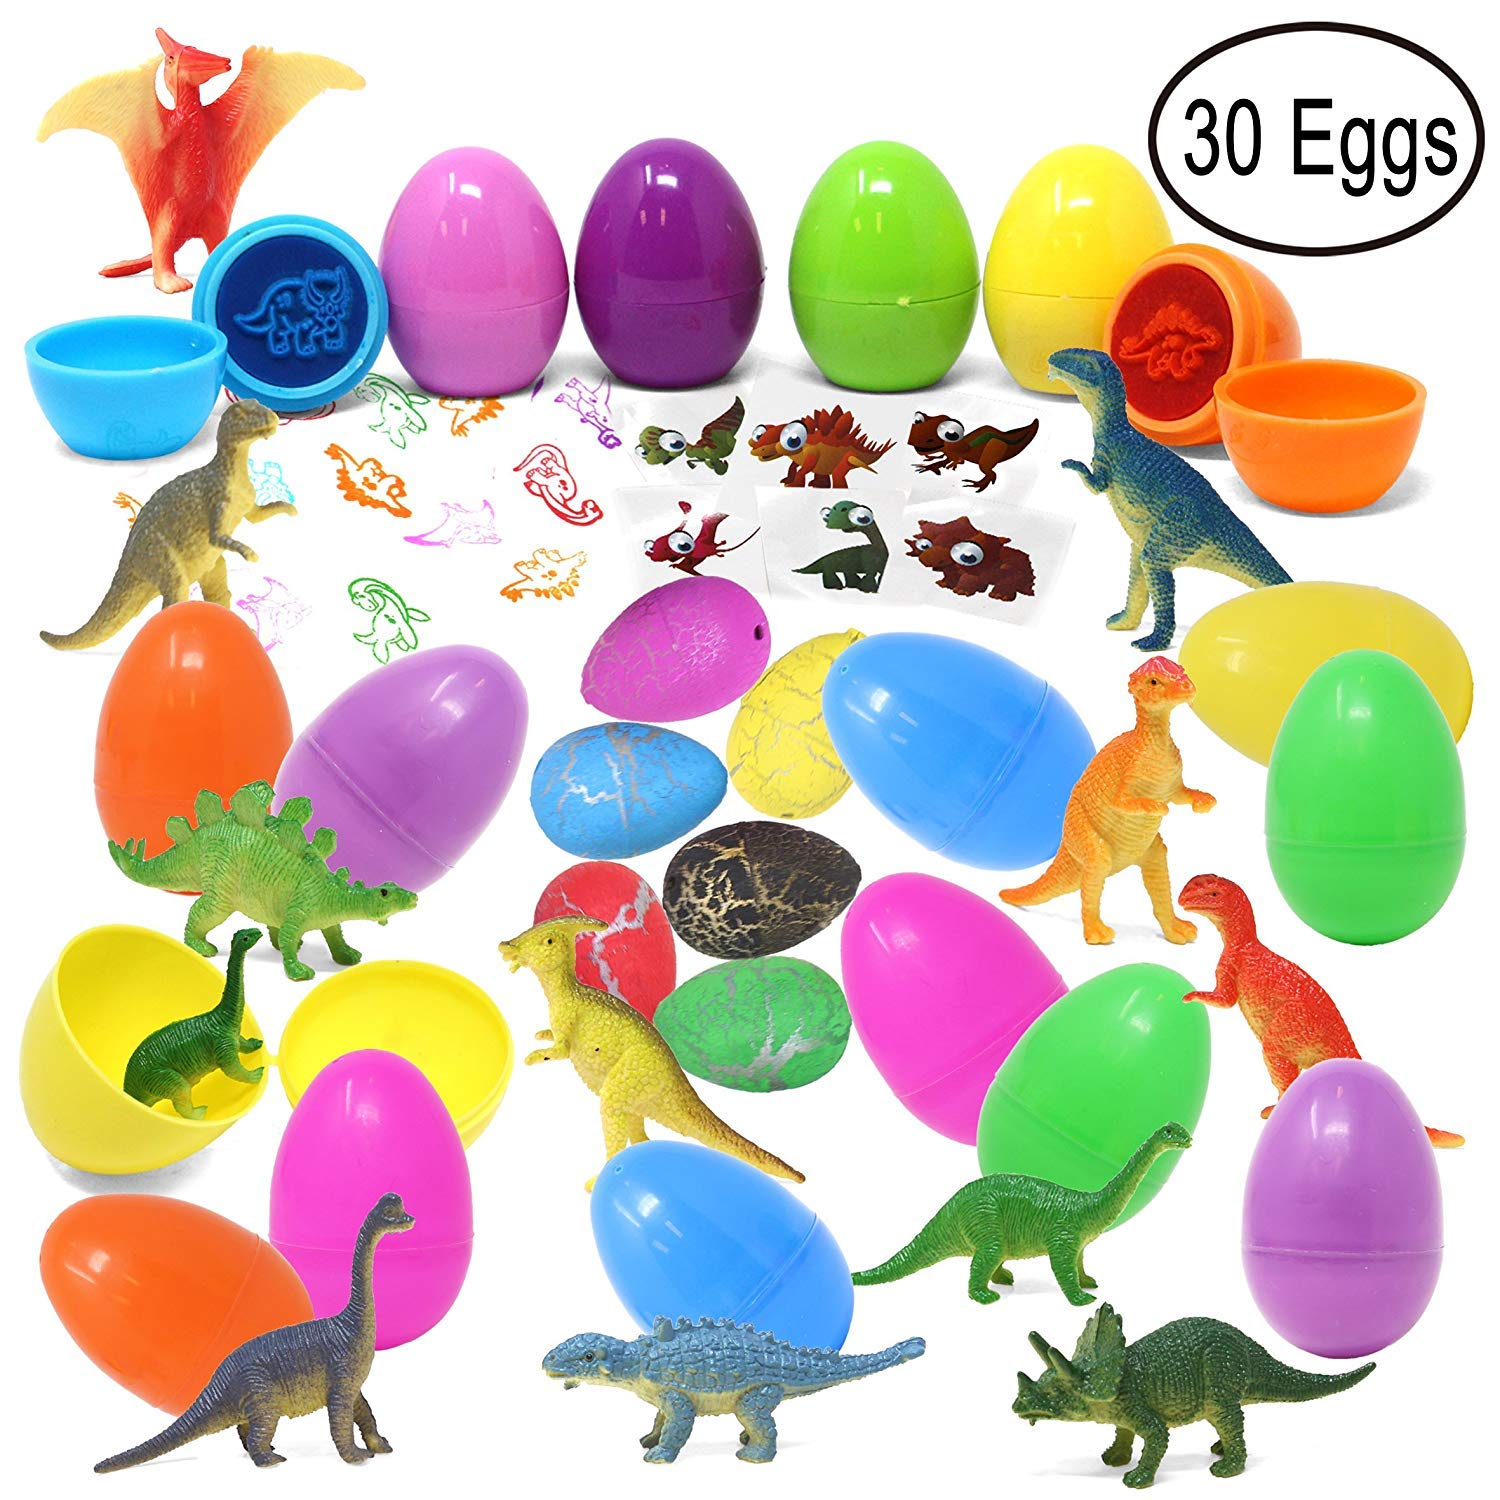 30 Pieces Prefilled Easter Eggs with Dinosaur Figures, Hatch and Grow Dinosaurs, Dinosaur Tattoo and Stamps for Easter Basket Stuffers Party Favors